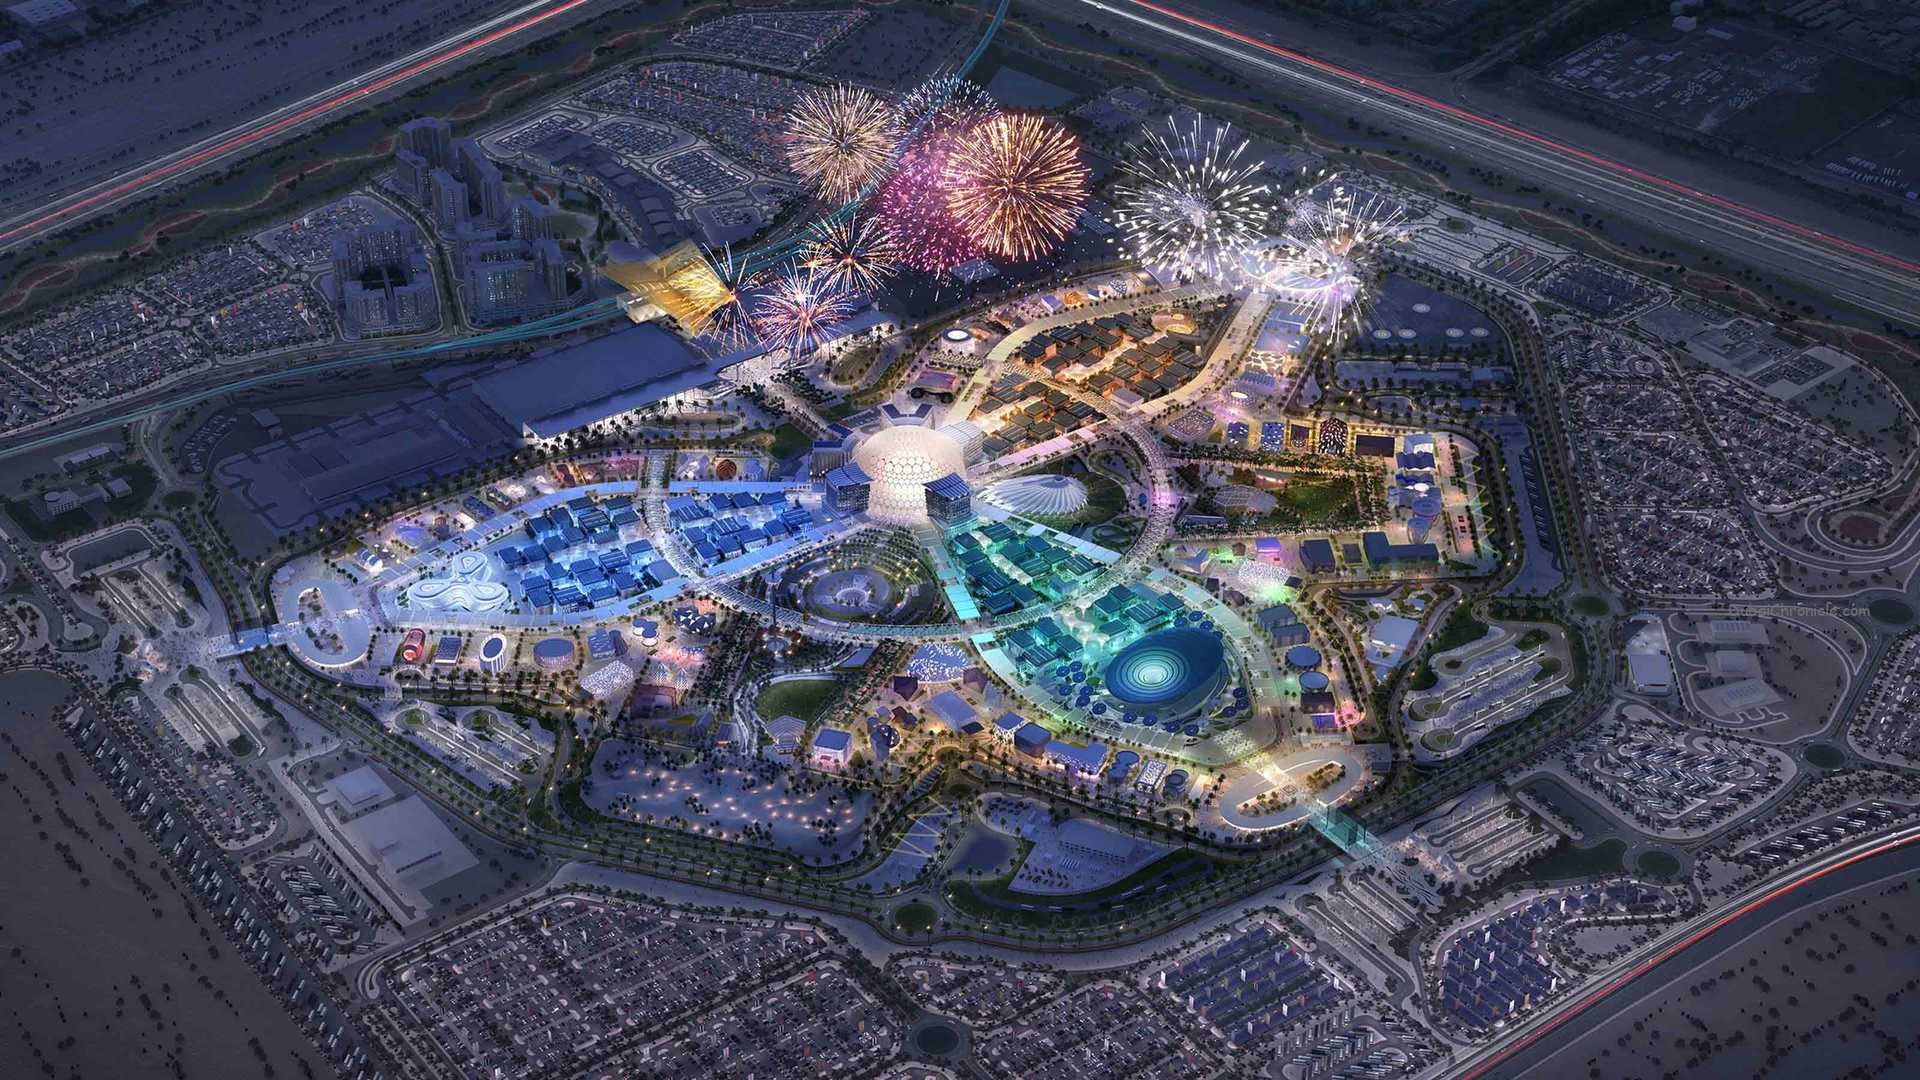 Expo 2020 Dubai Run takes the UAE's enthusiastic running community on a scenic route through the Expo site, past 192 awe-inspiring pavilions.